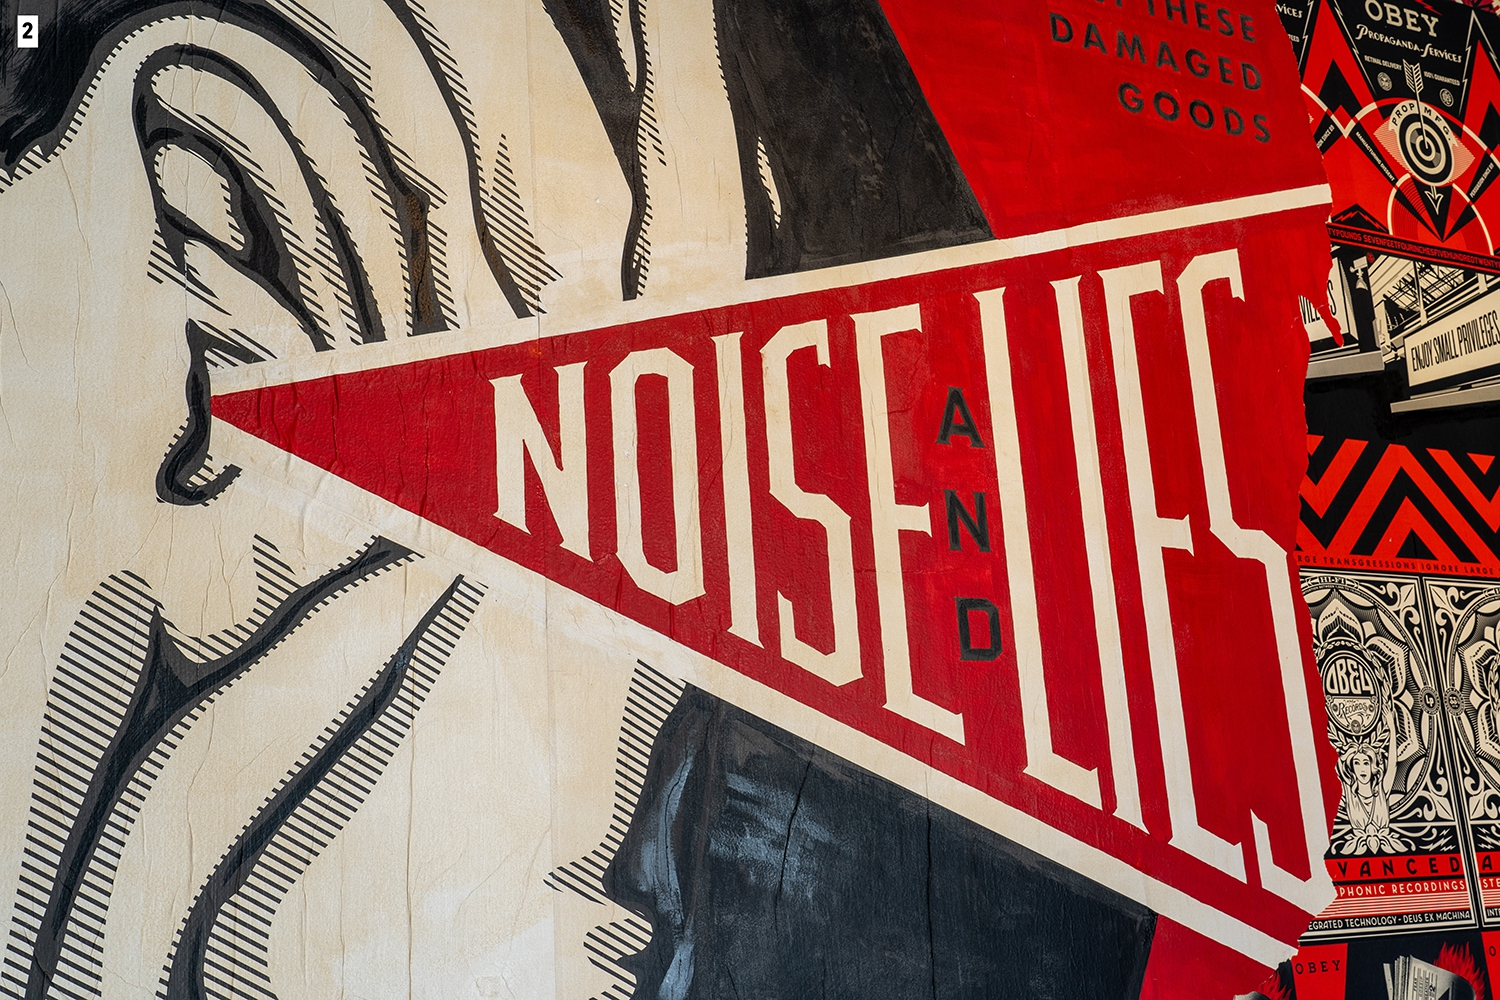 Noise & Lies by Shepard Fairey, detail